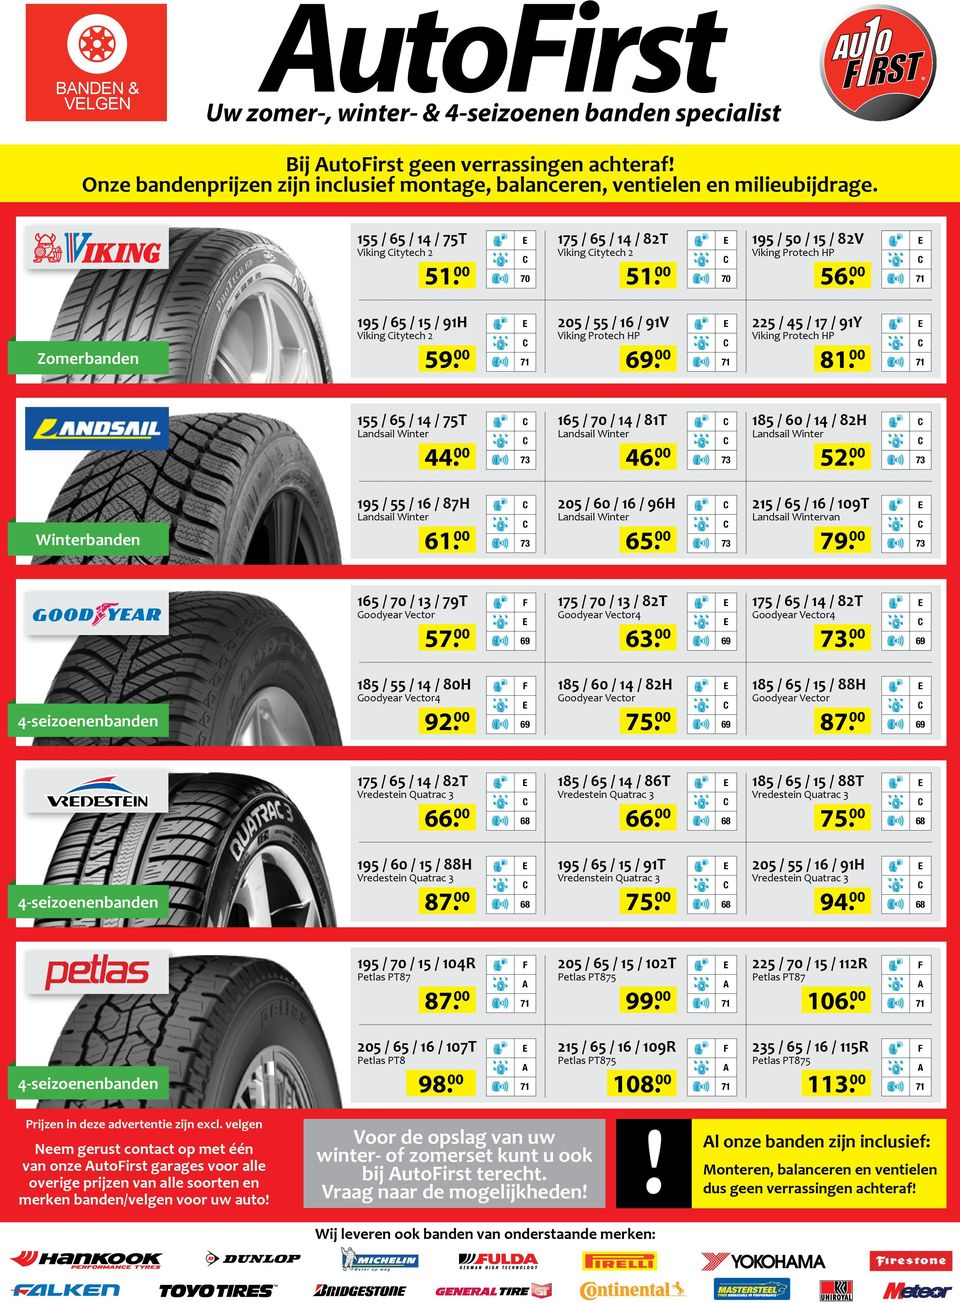 185 / 55 / 14 / 80H Goodyear Vector4 70 205 / 55 / 16 / 91V Viking Protech HP. 165 / 70 / 14 / 81T 46. 205 / 60 / 16 / 96H 65. 175 / 70 / 13 / 82T Goodyear Vector4 63.